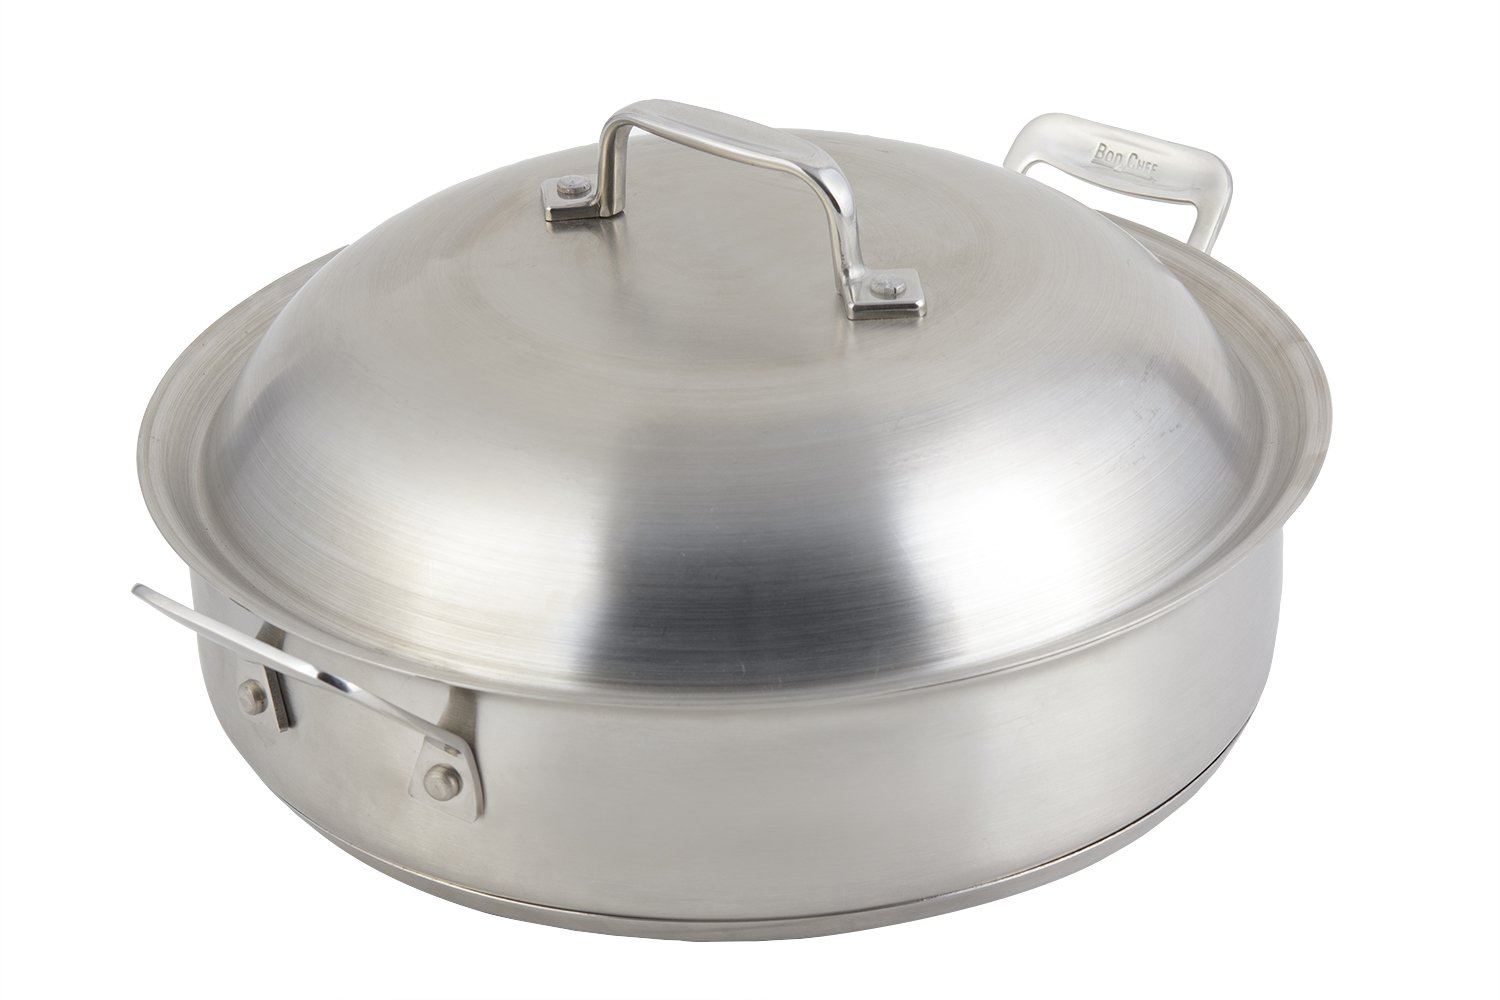 Bon Chef 60001 Stainless Steel Induction Bottom Cucina Saute Pan, 4 quart Capacity, 13-29/32'' Length x 11-19/64'' Width x 3'' Height